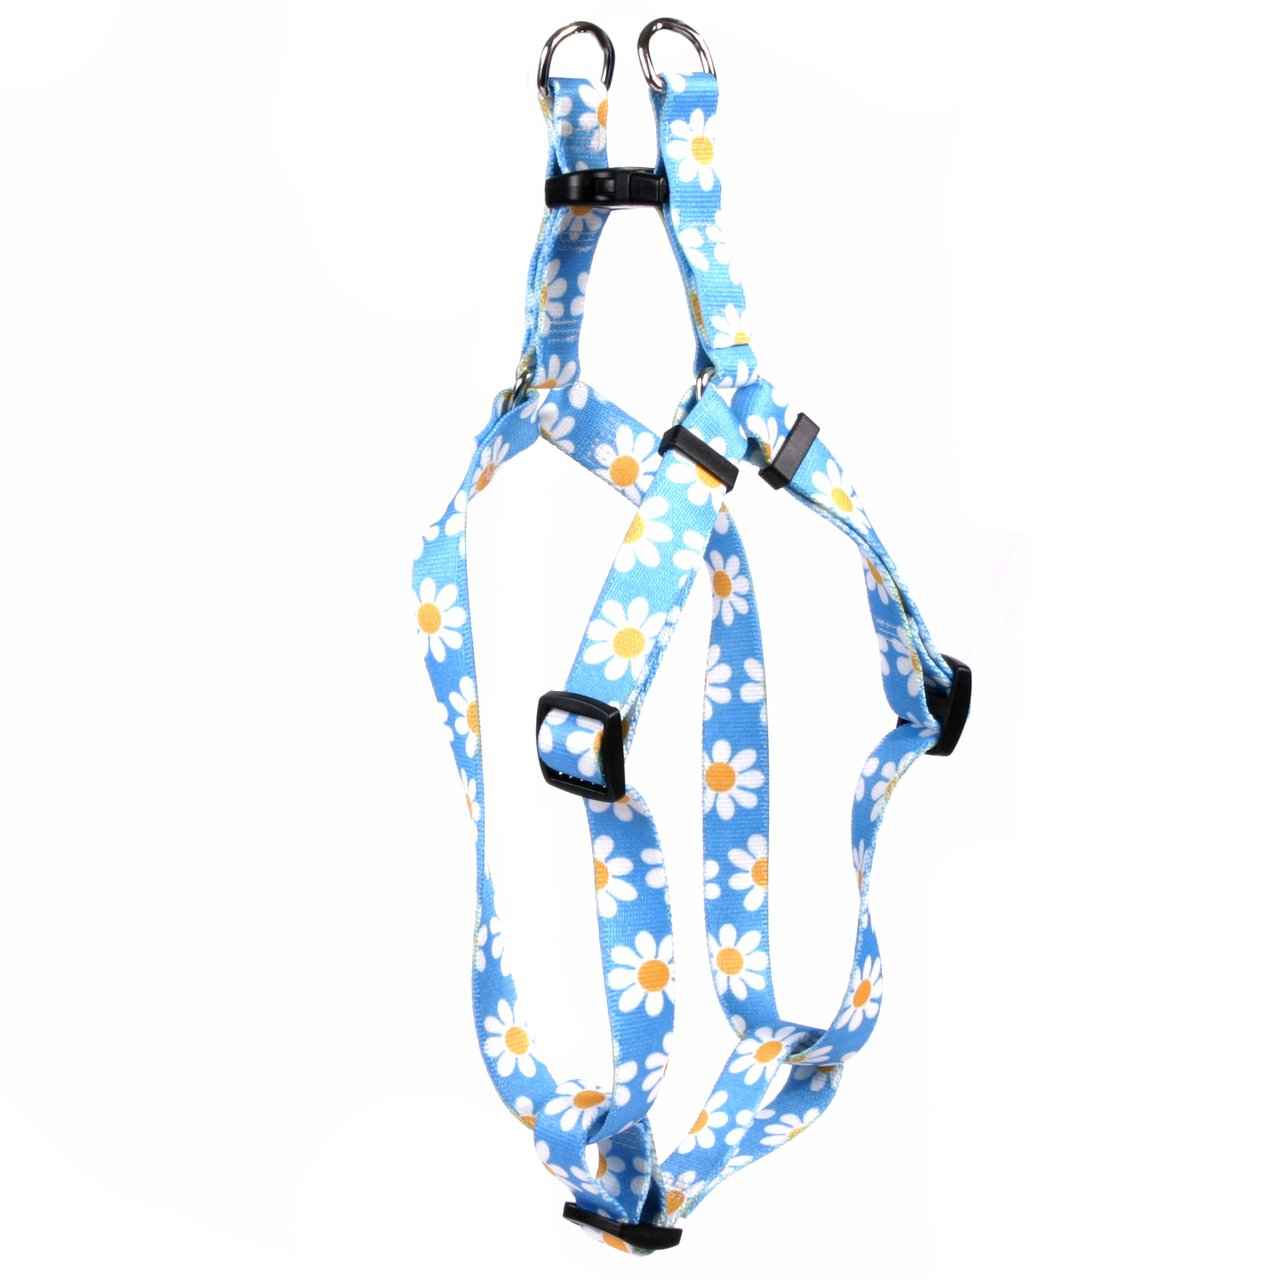 Medium 15\ Yellow Dog Design bluee Daisy Step-in Dog Harness 3 4  Wide and Fits Chest Circumference of 15 to 25 , Medium